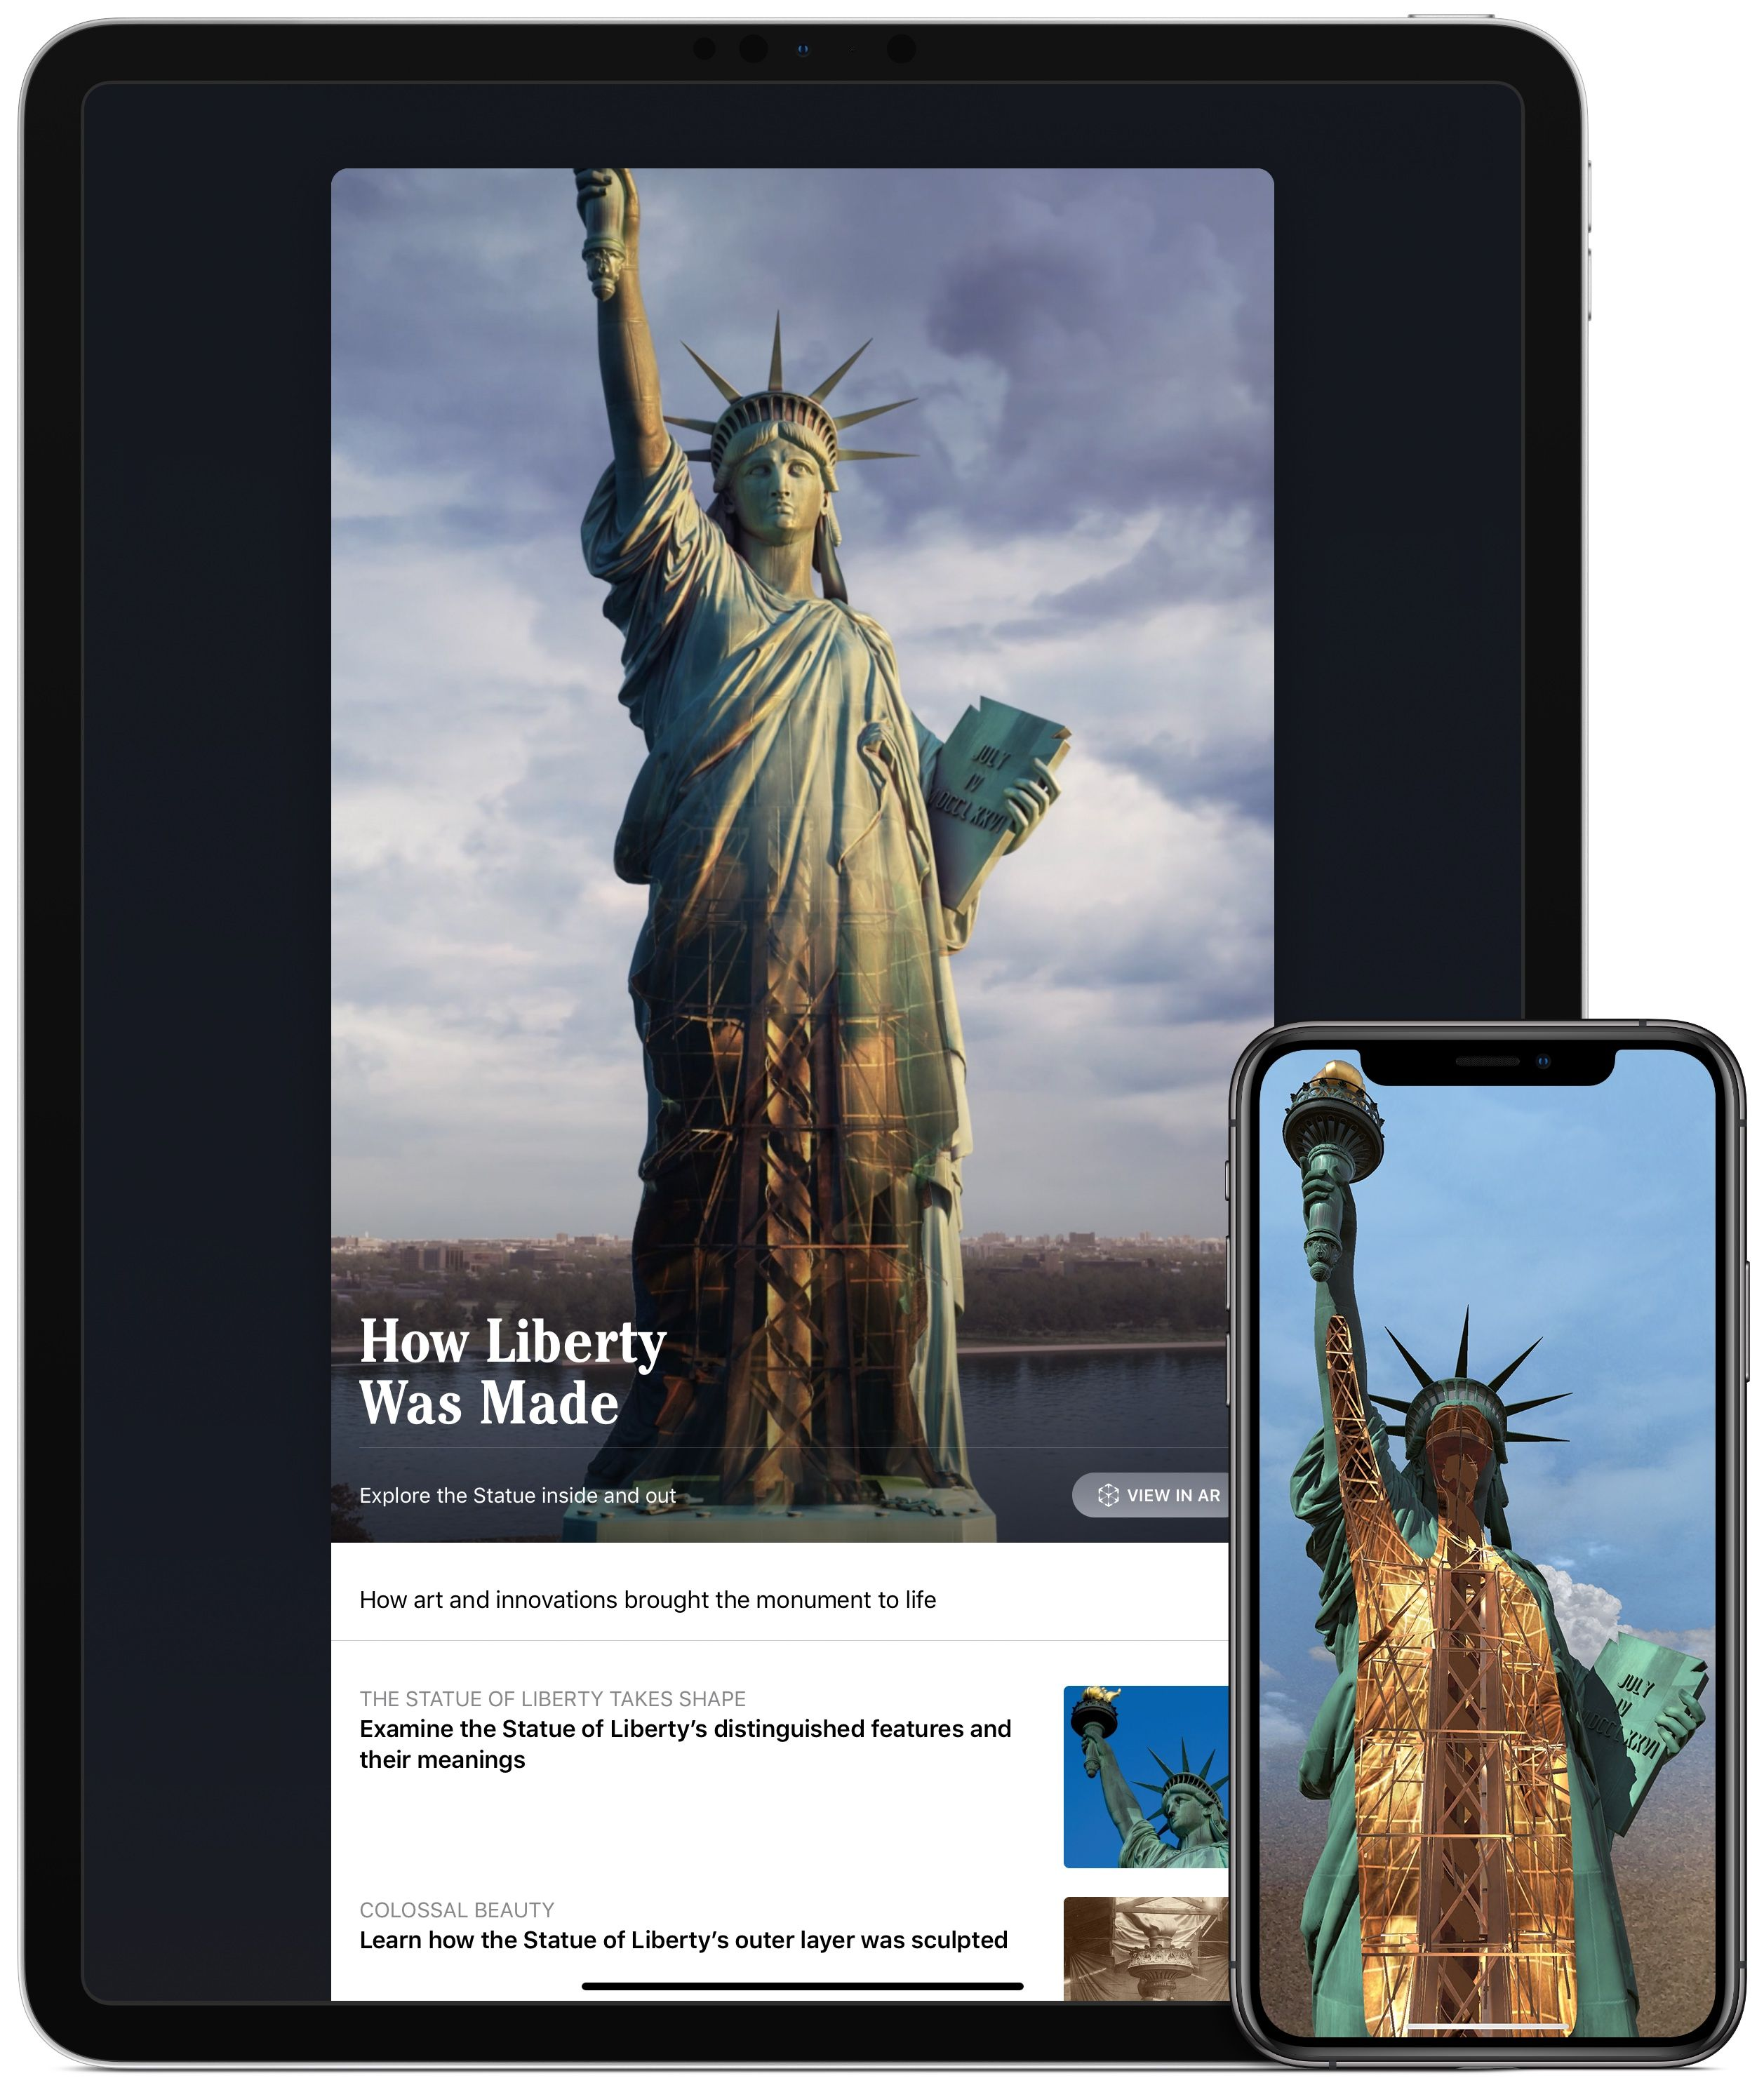 Apple's New Statue of Liberty App Offers an Amazing AR Experience